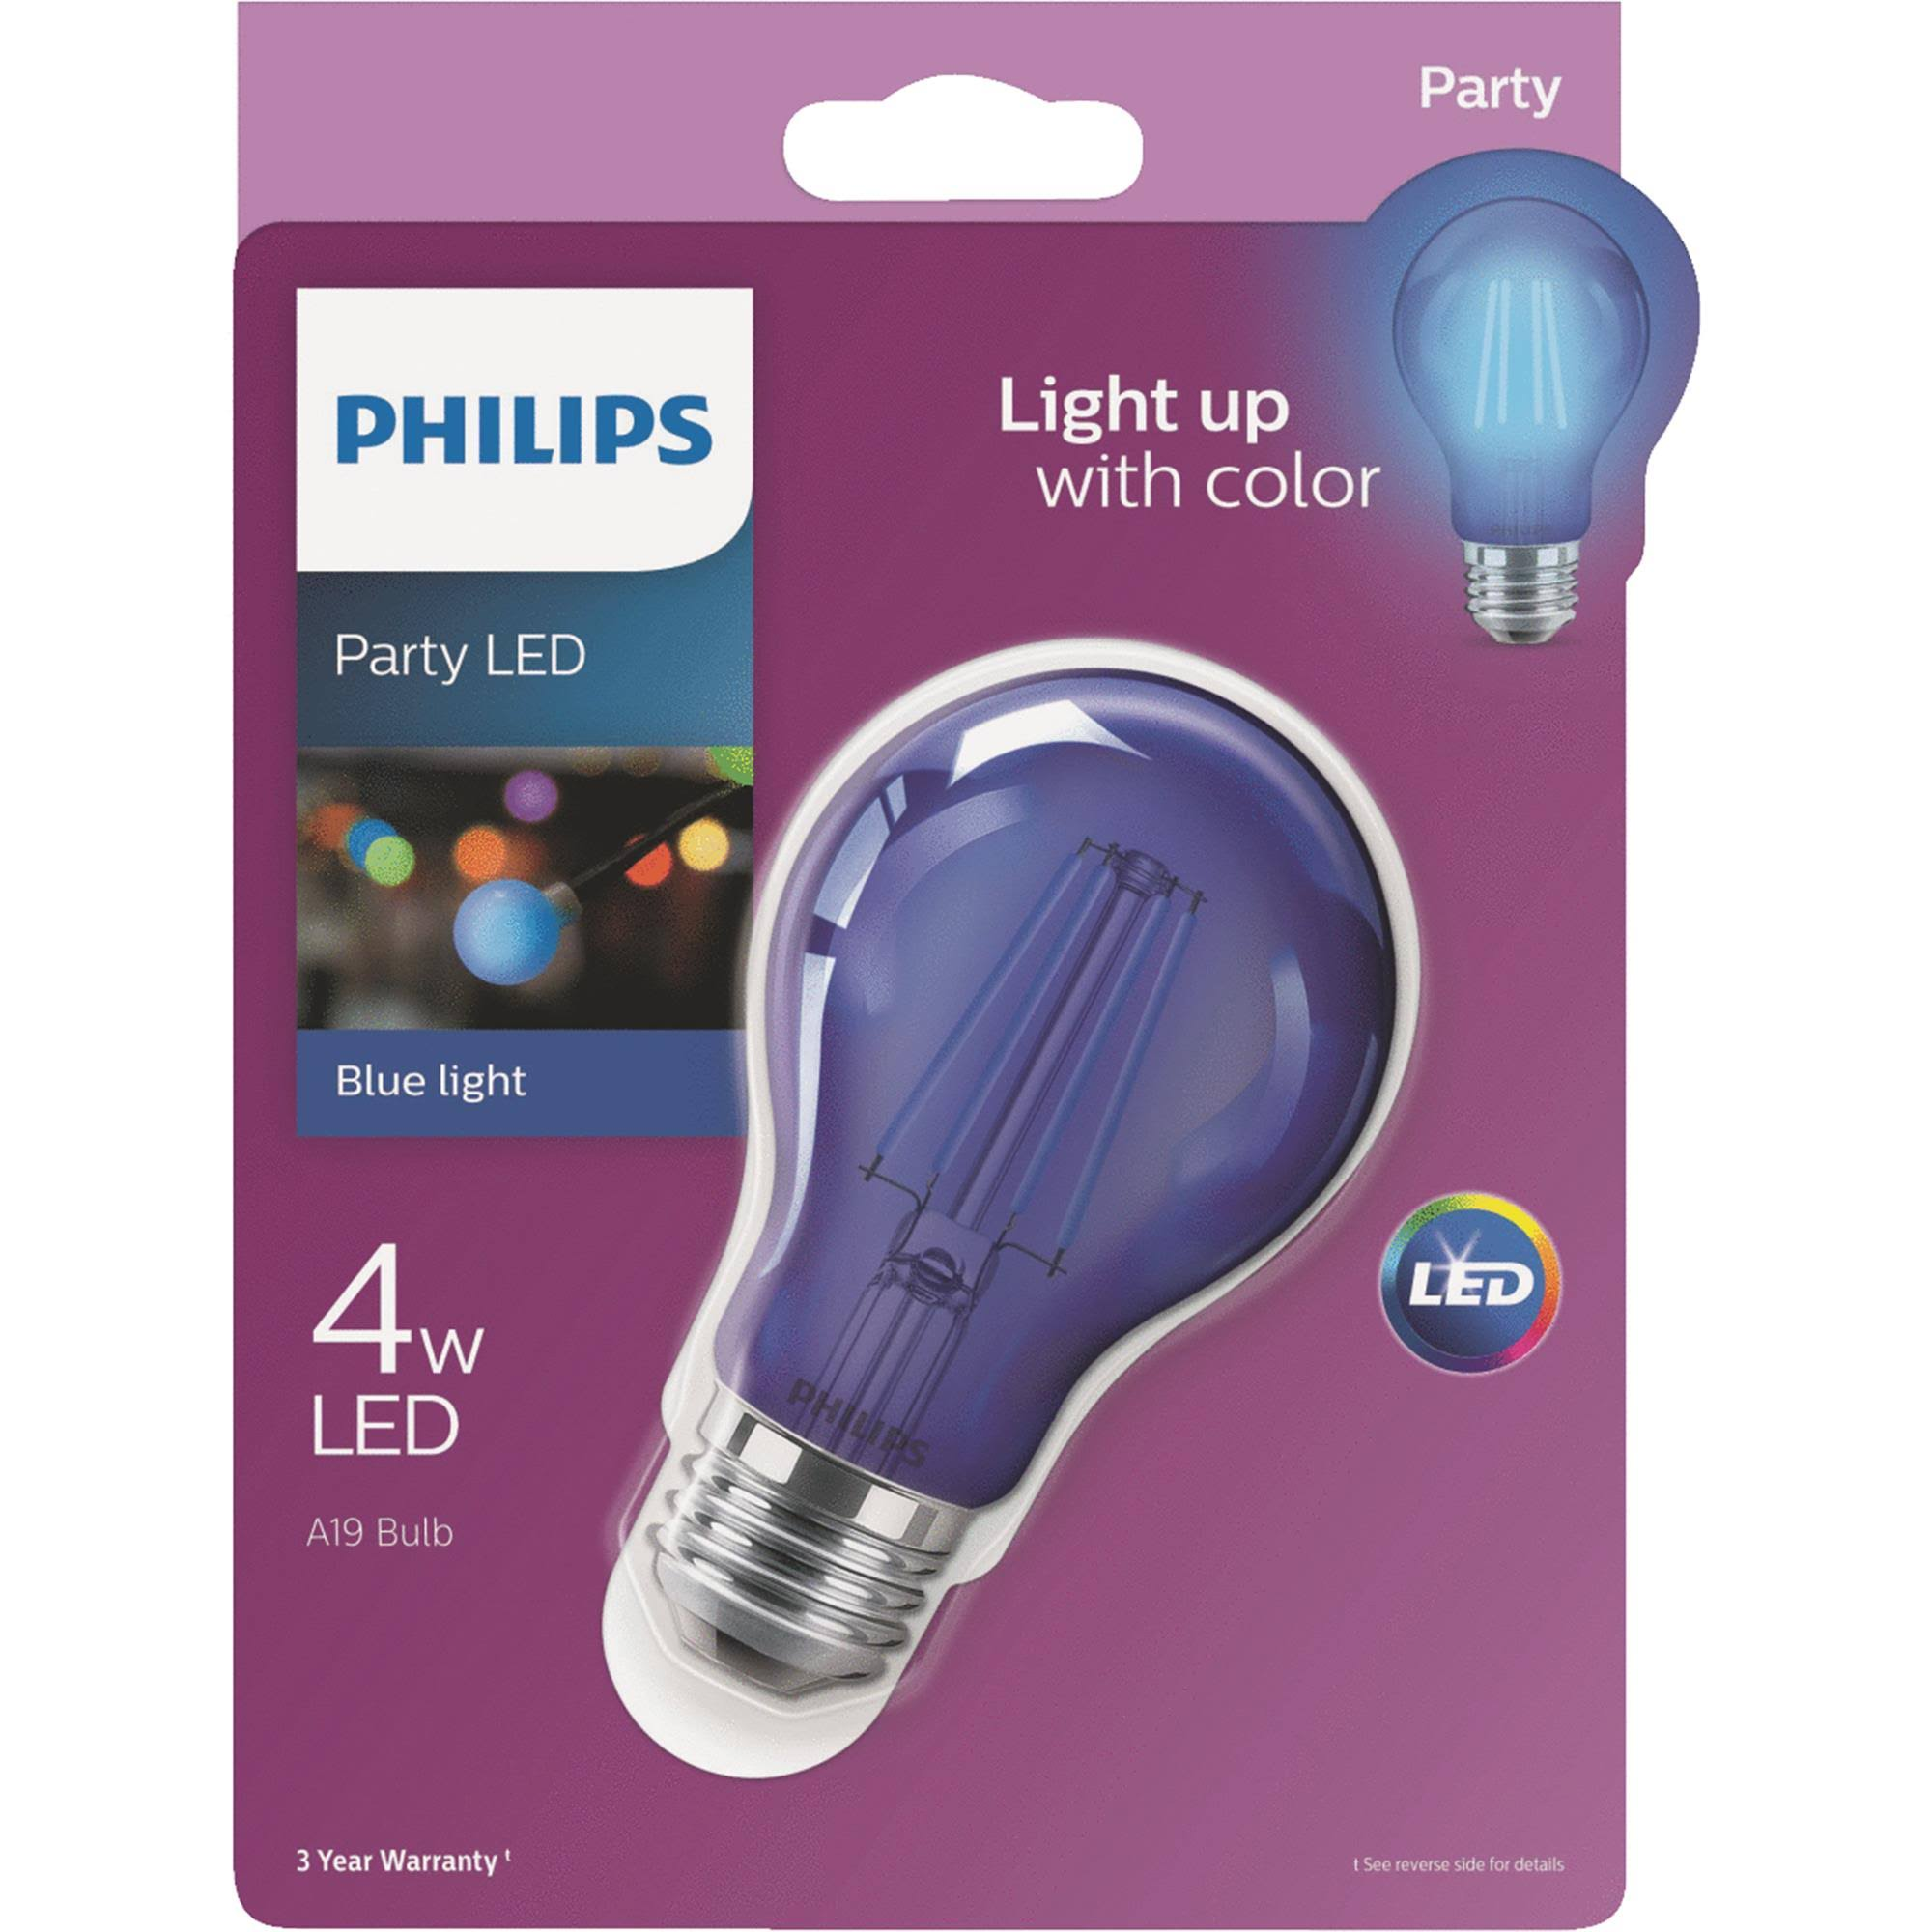 Philips A19 Medium Indoor/Outdoor LED Decorative Party Light Bulb 538231